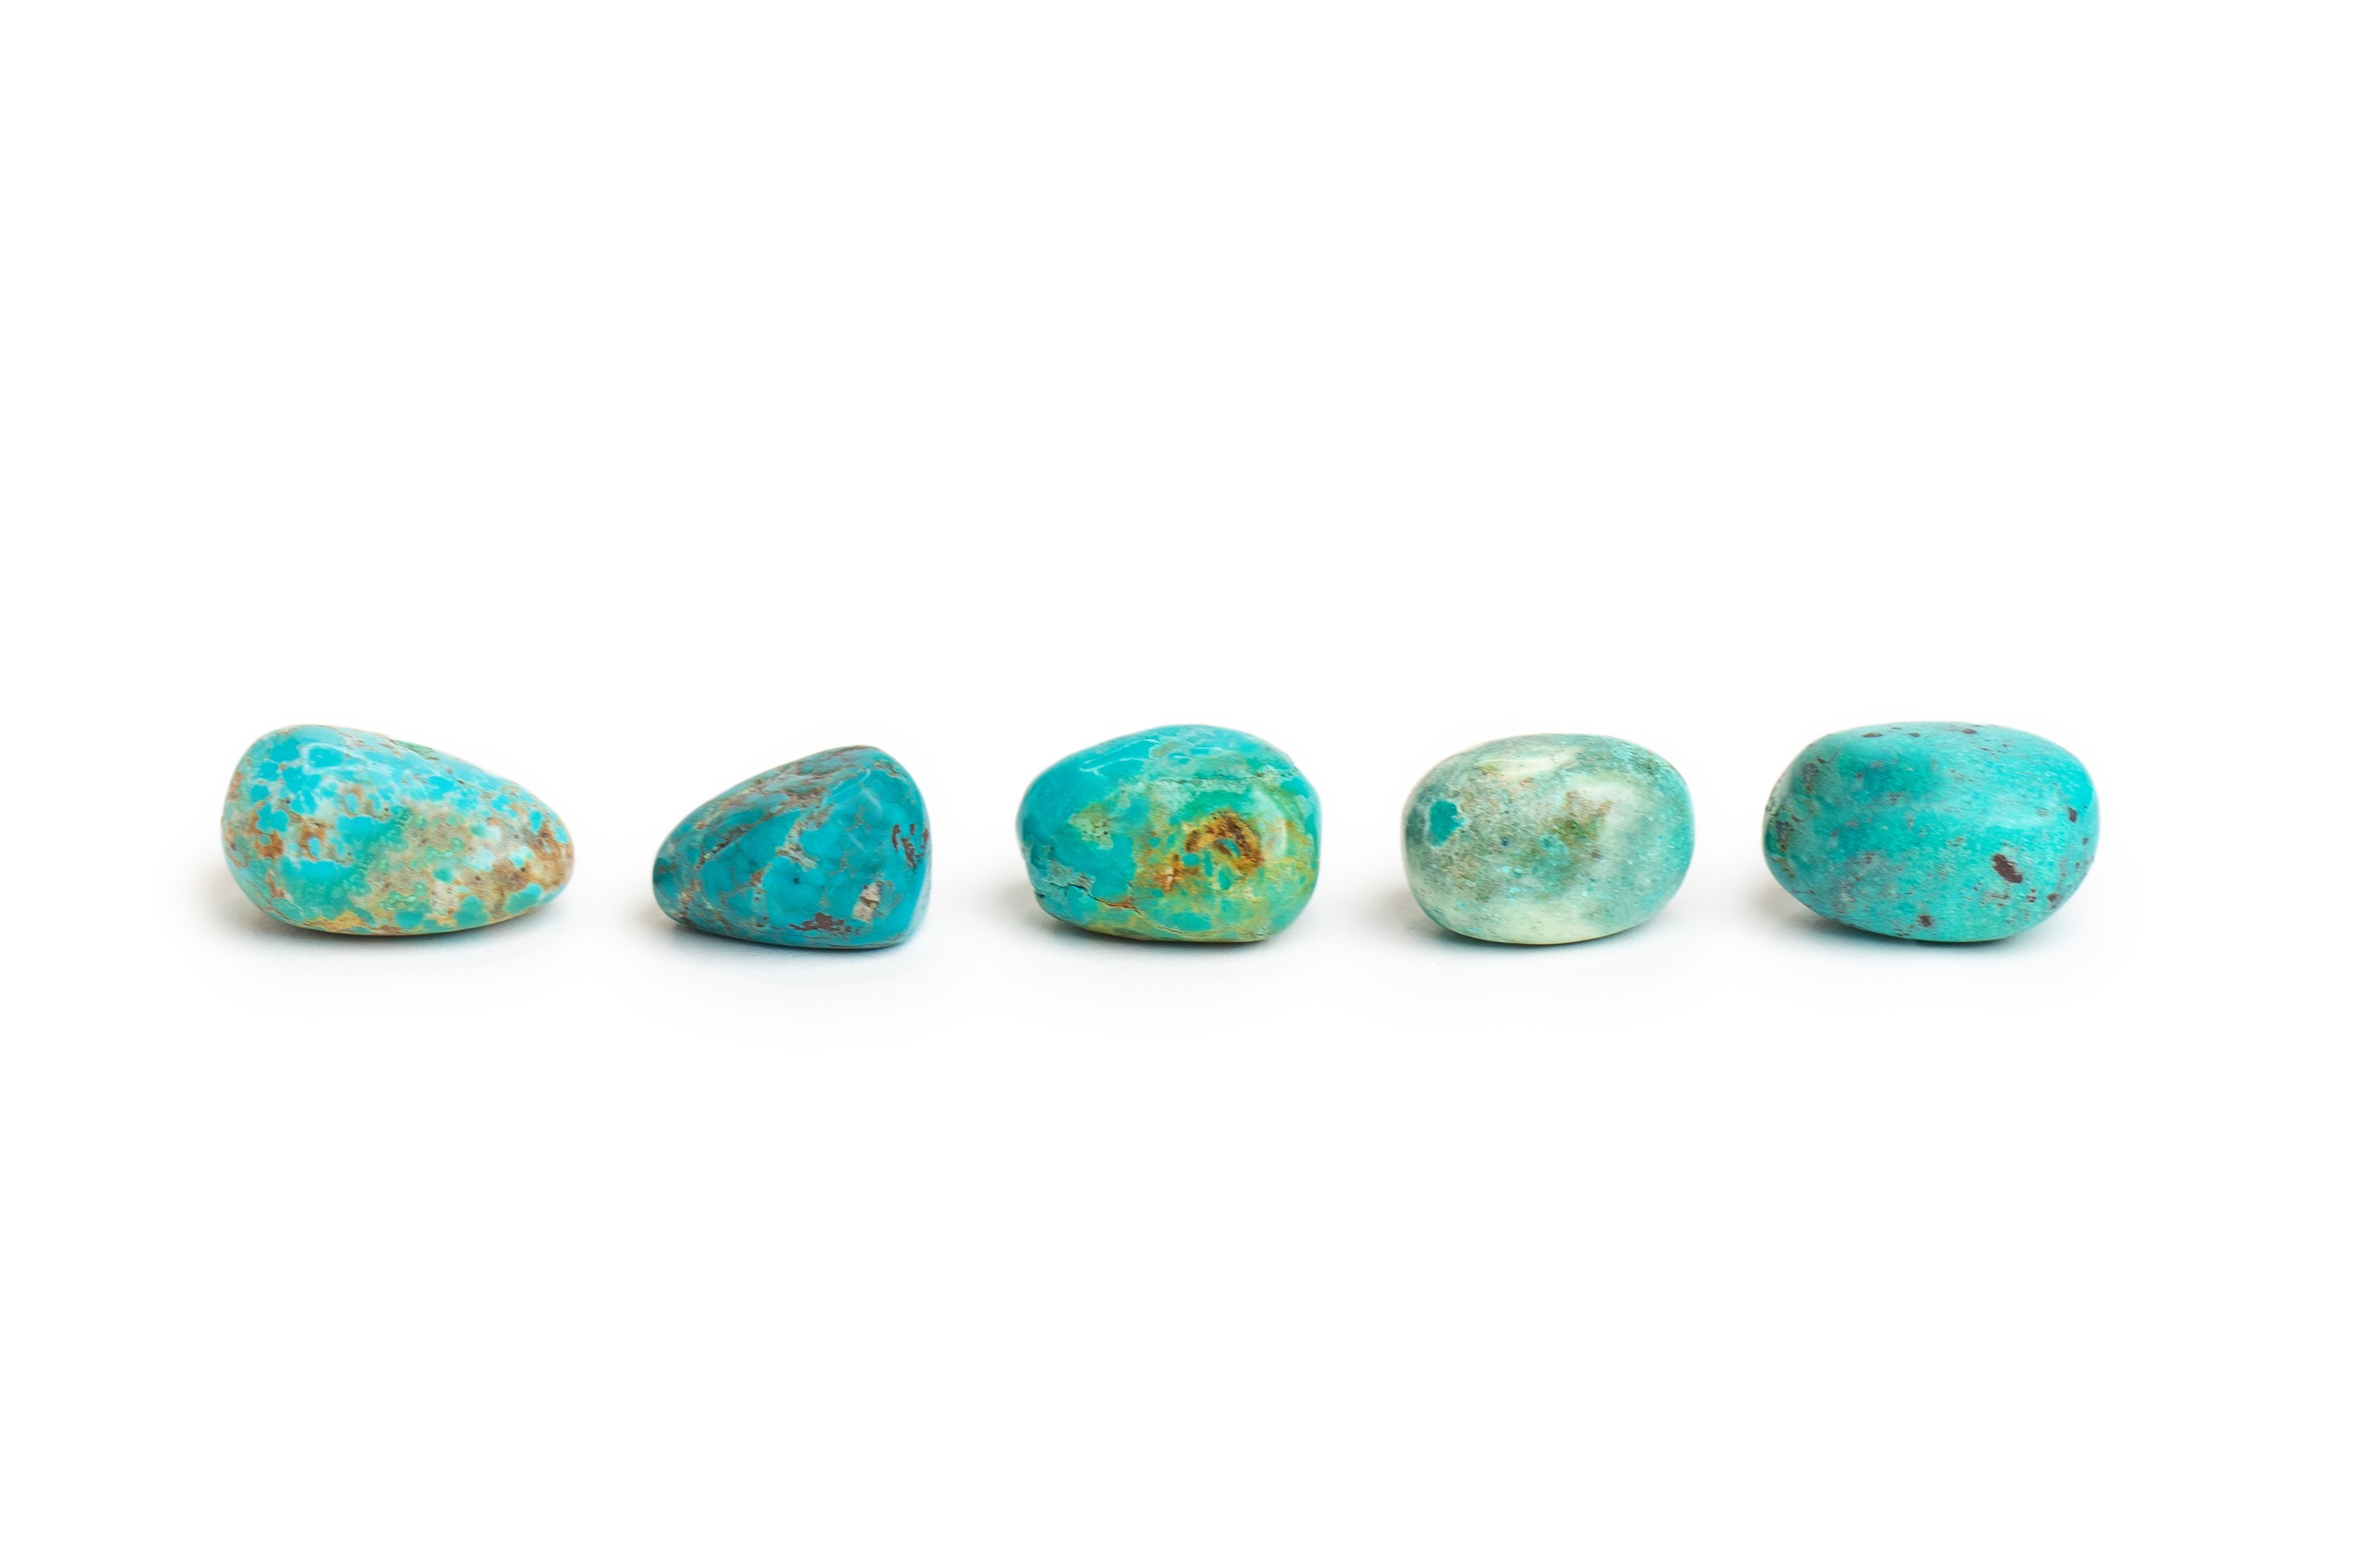 Turquoise Meaning - Turquoise Healing Properties